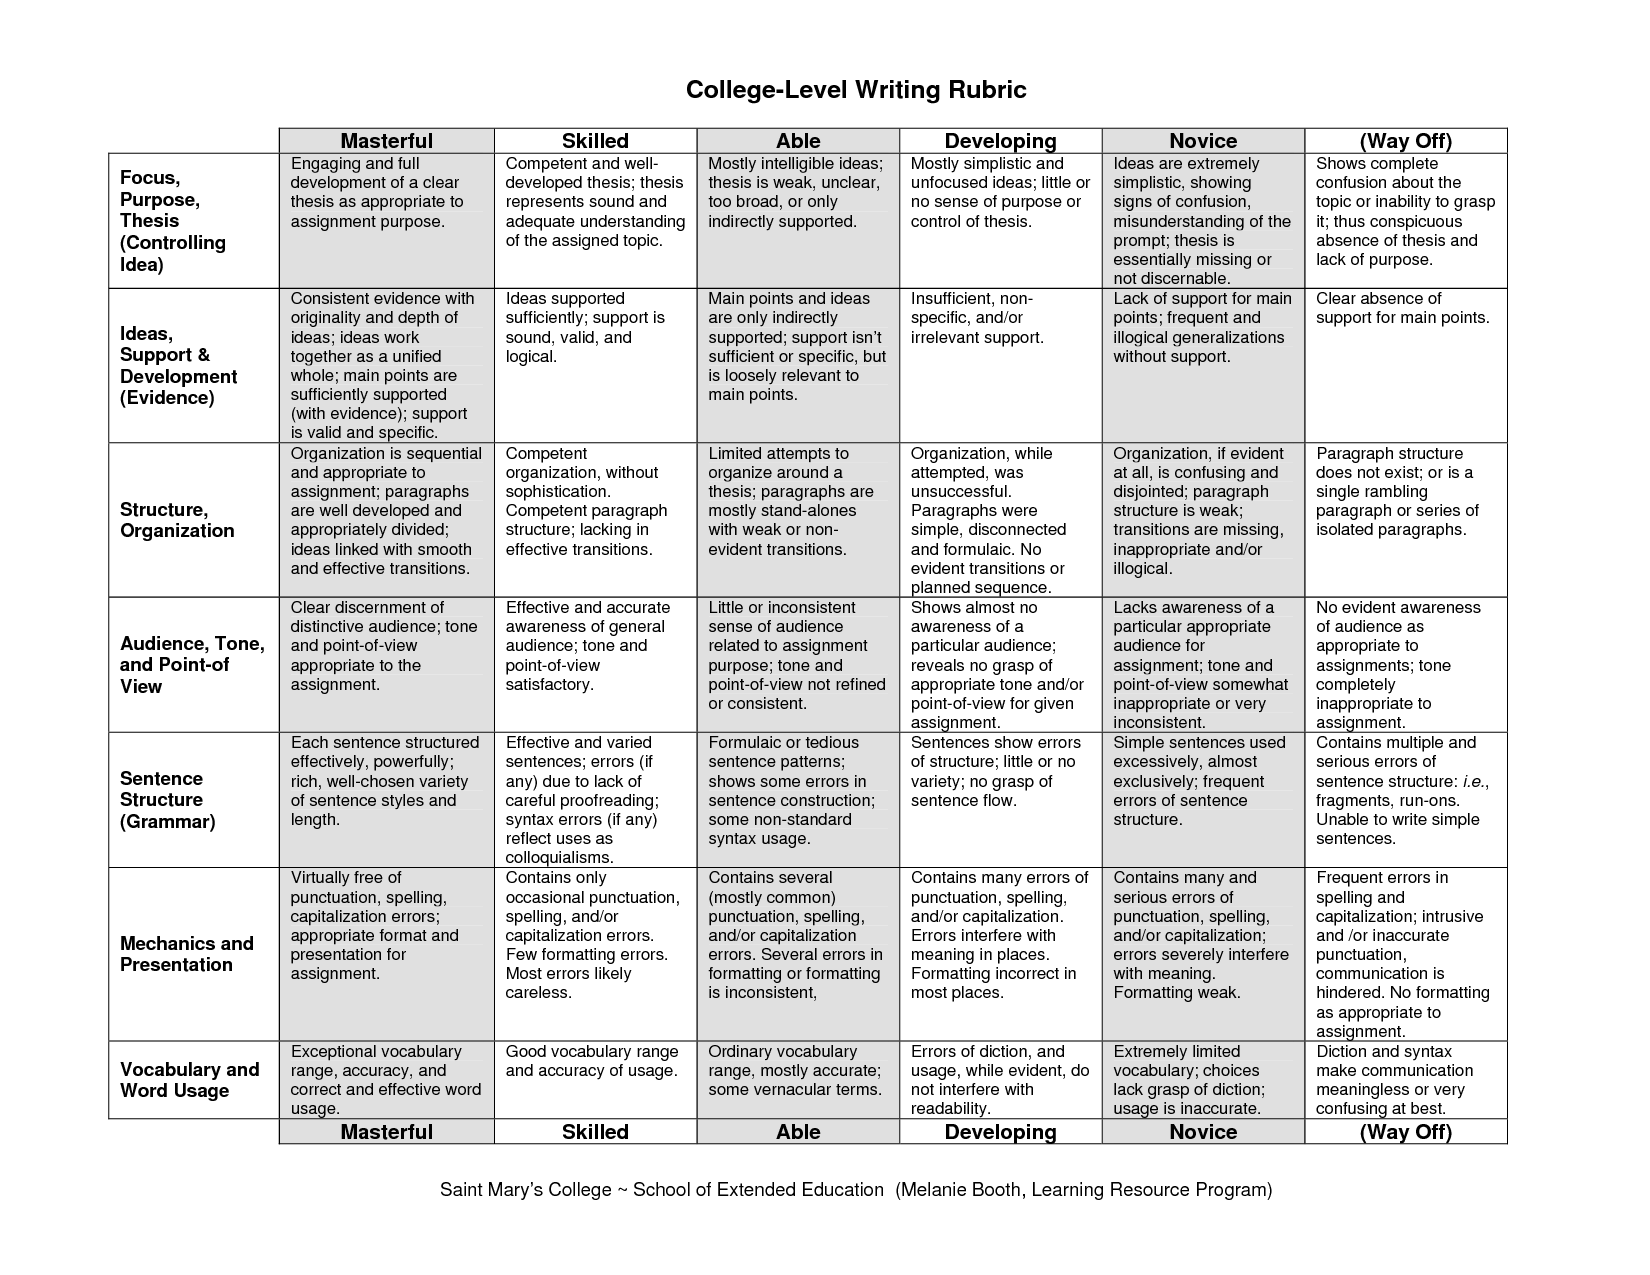 University essay writing rubric